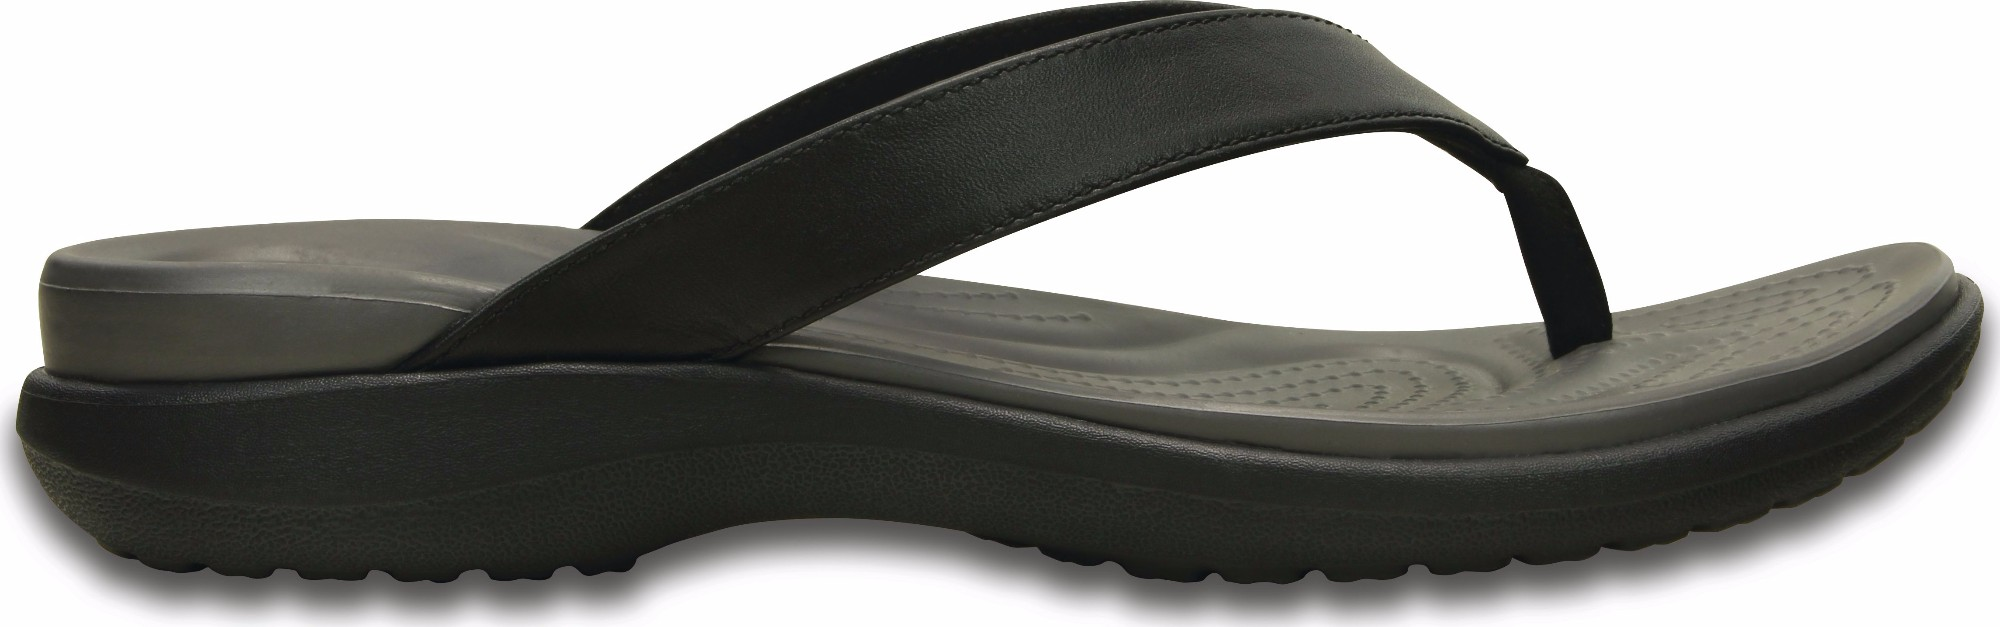 Crocs™ Capri V Flip Black/Graphite 39,5